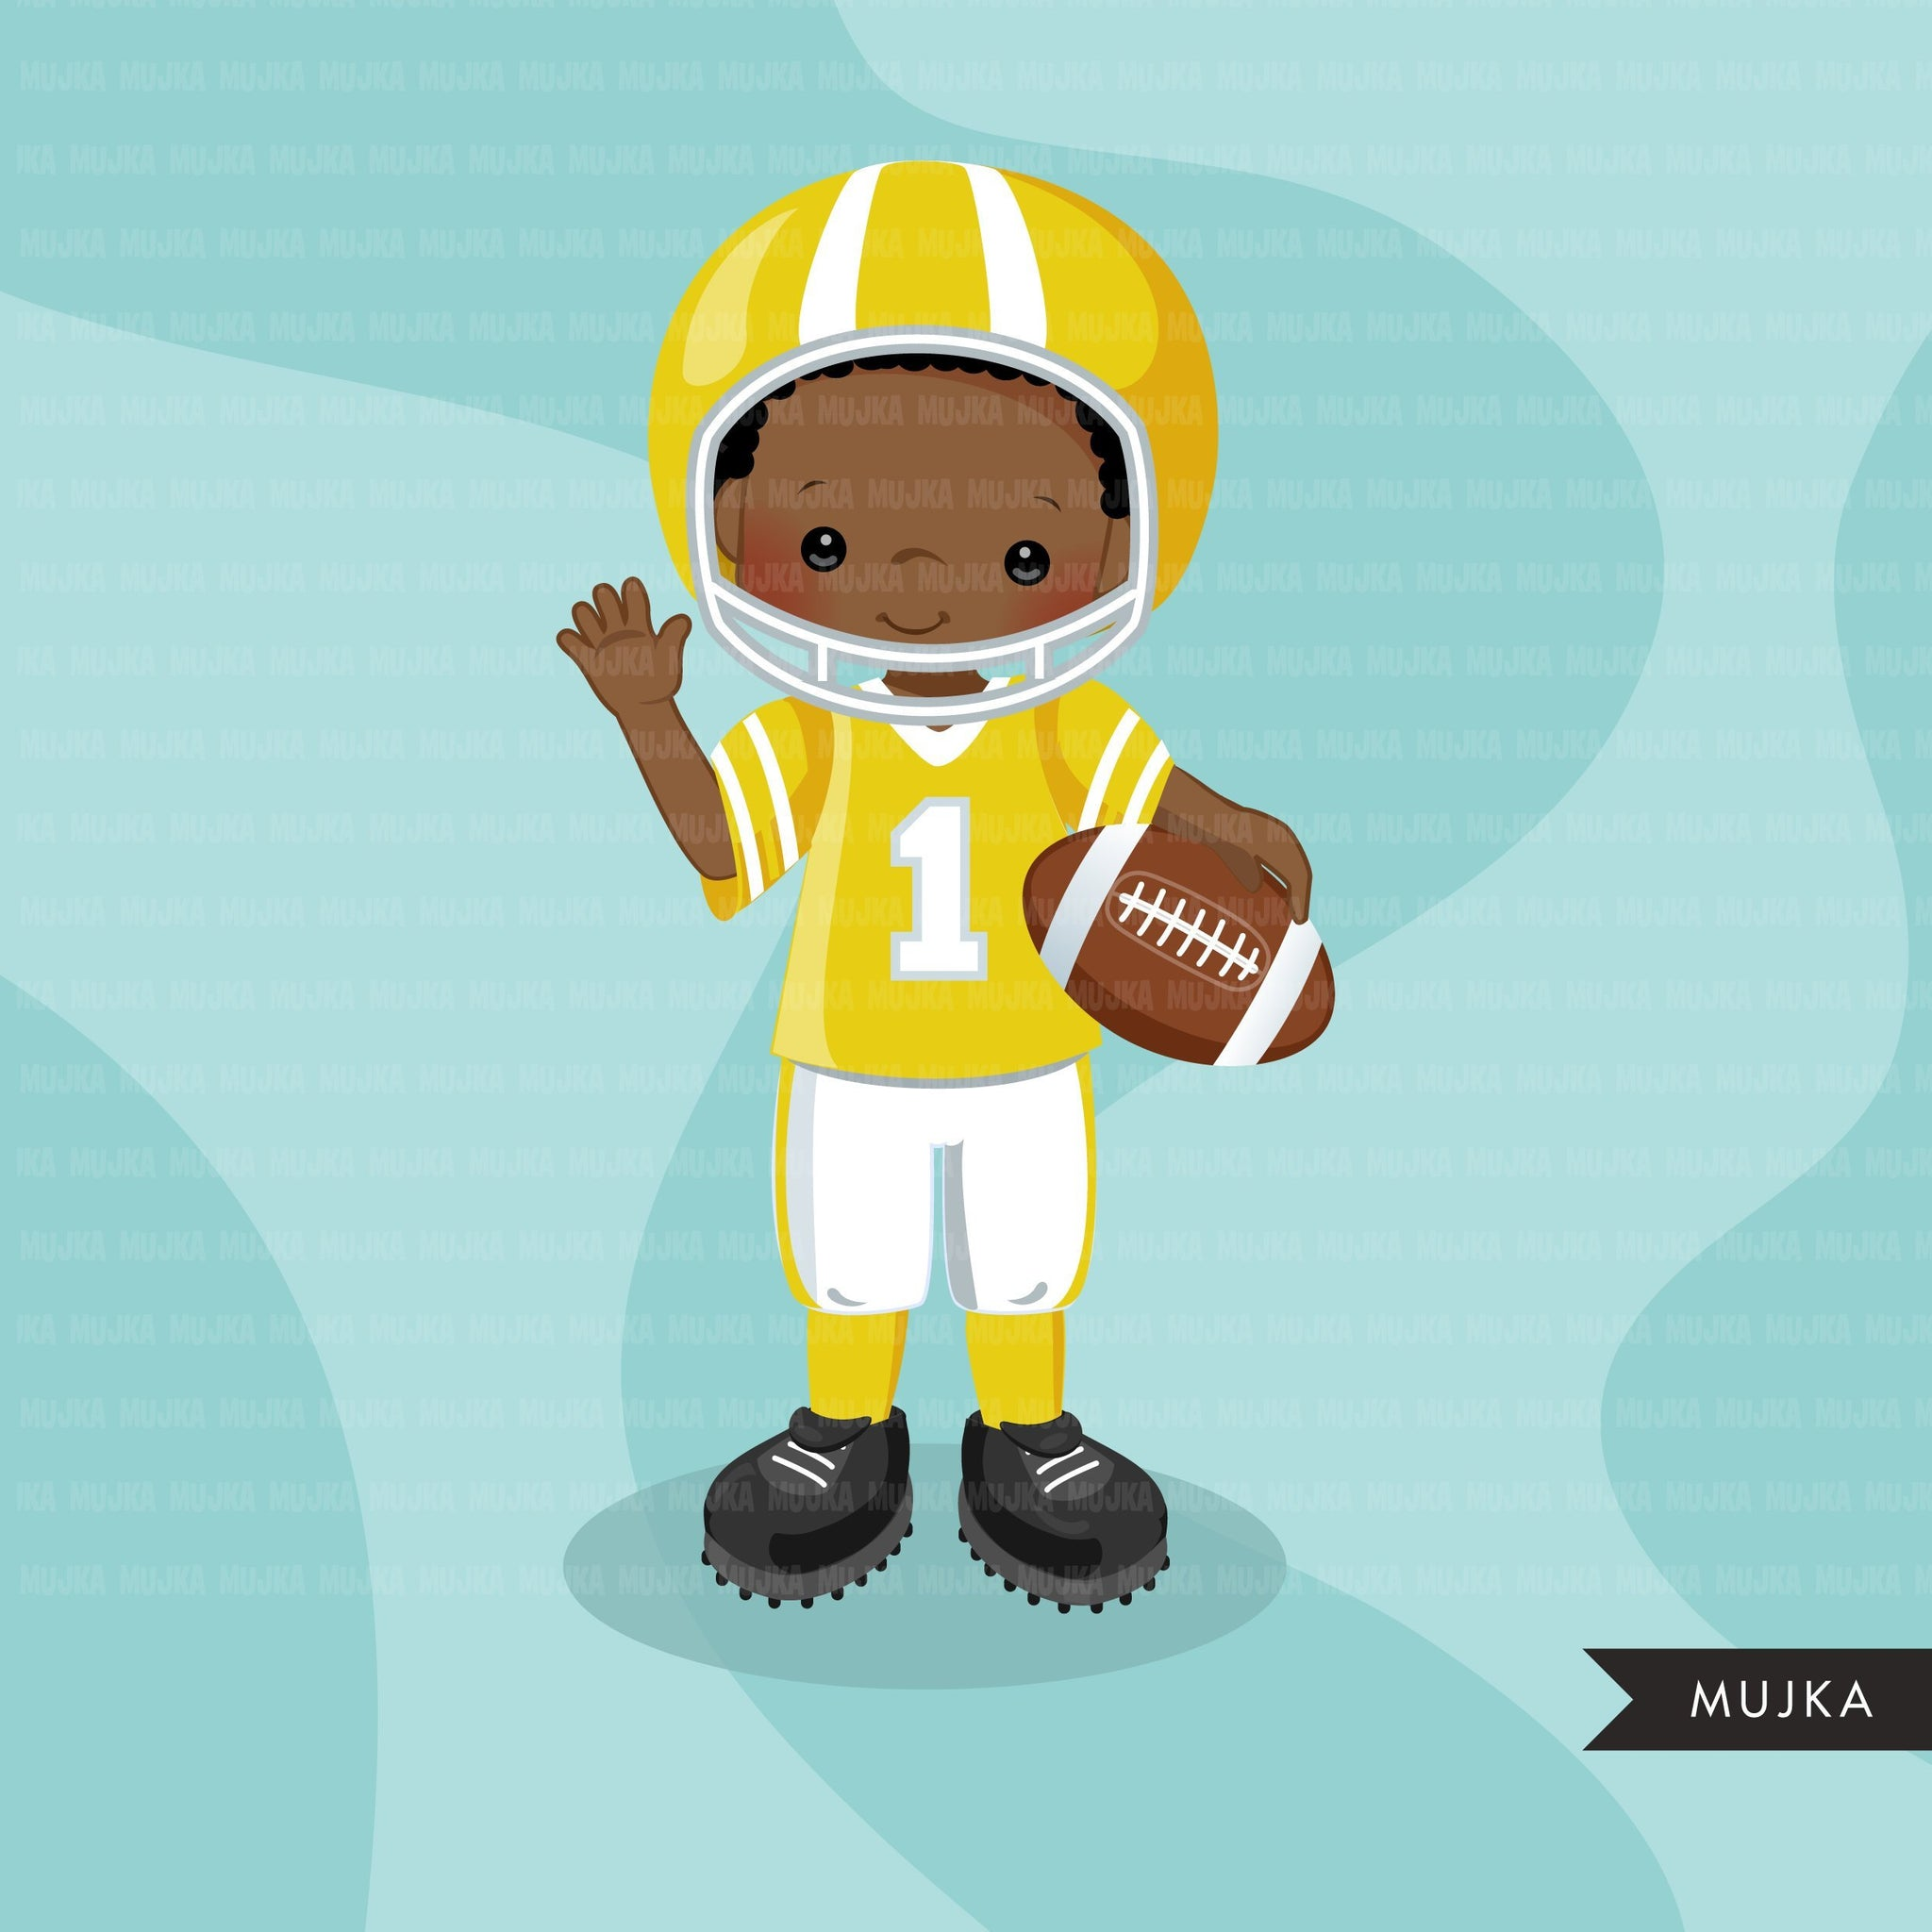 Football clipart, boy in yellow jersey